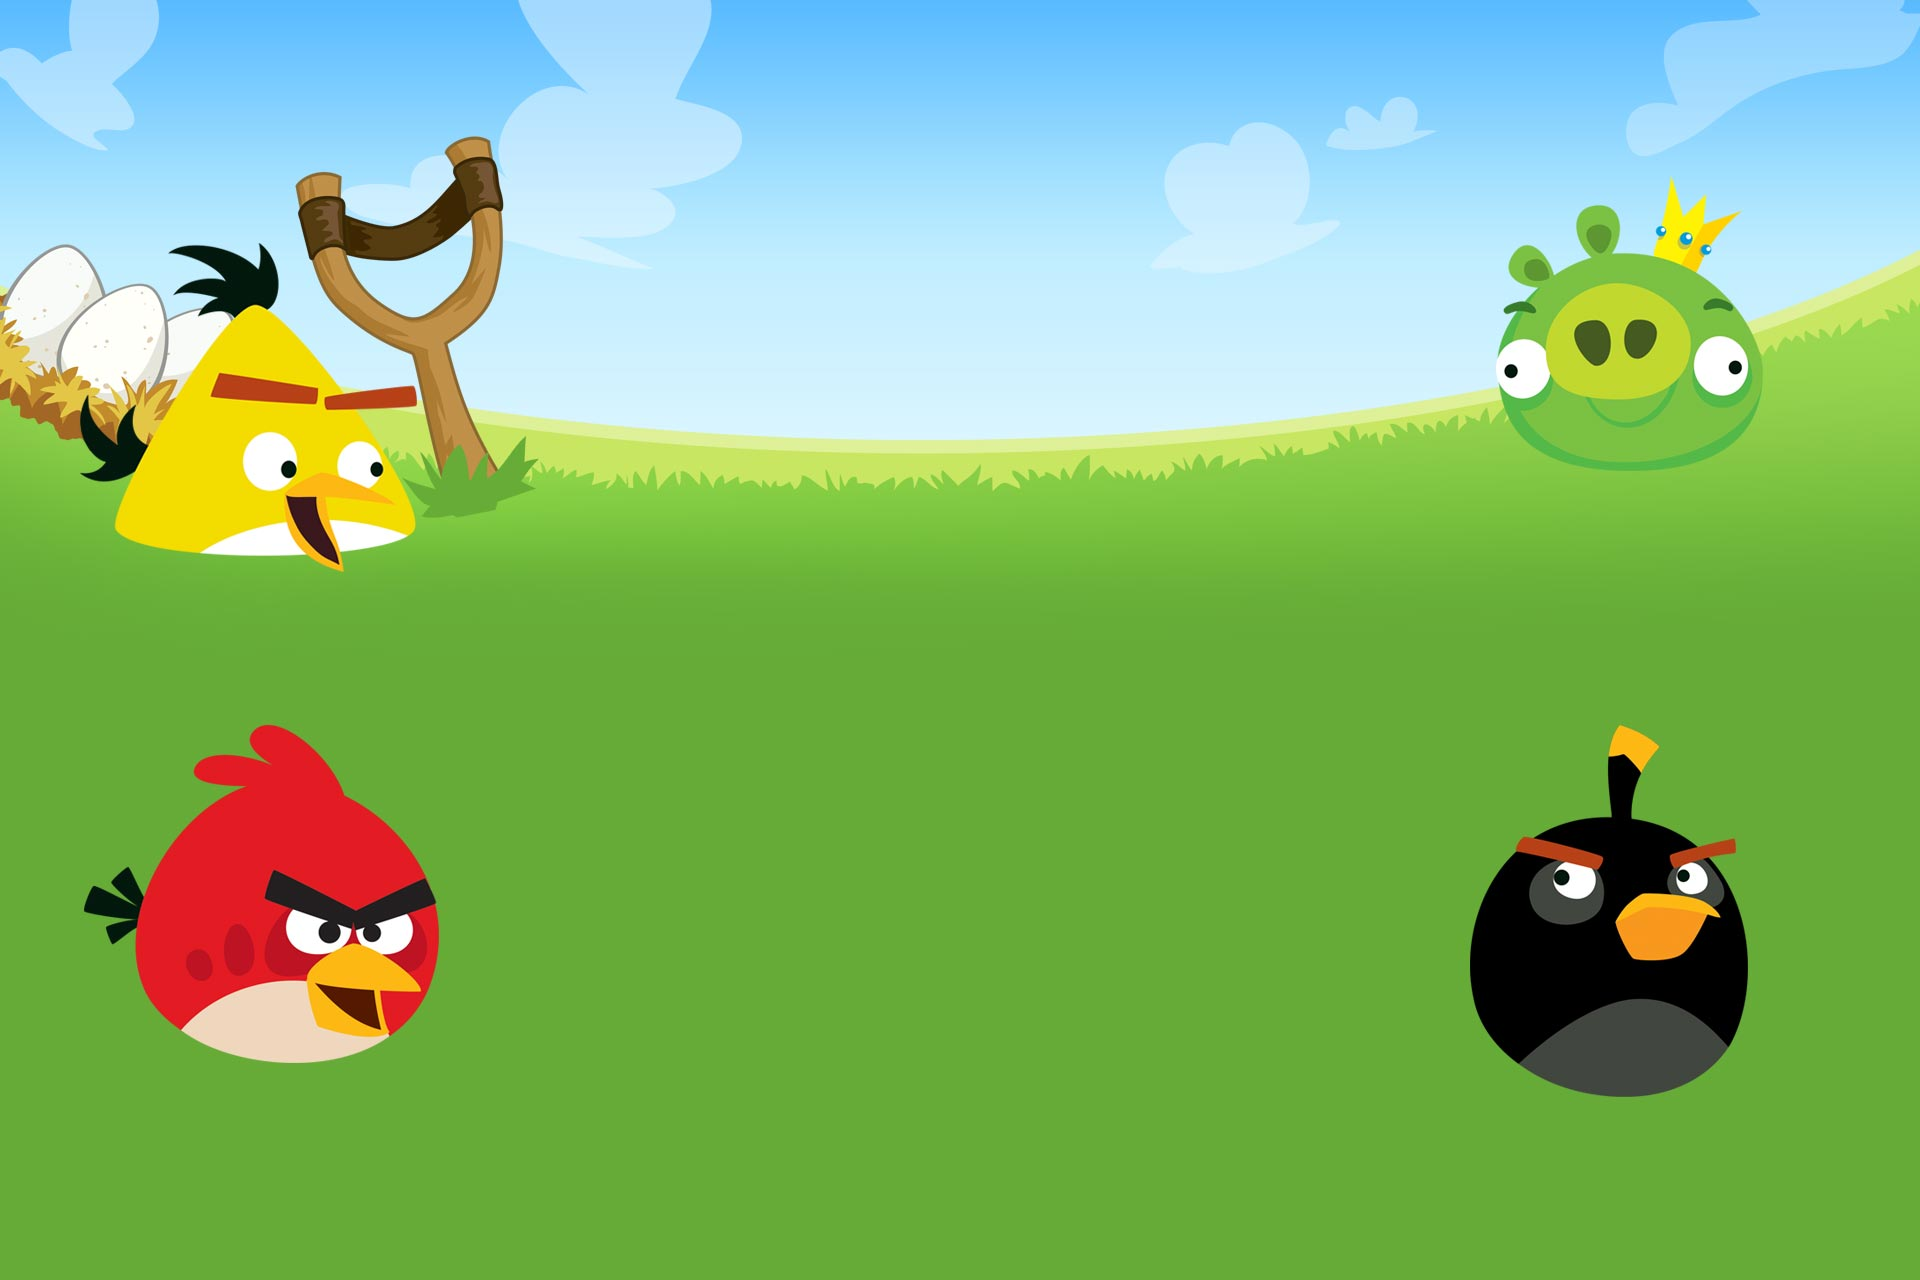 Angry Birds Background by nikitabirds on DeviantArt